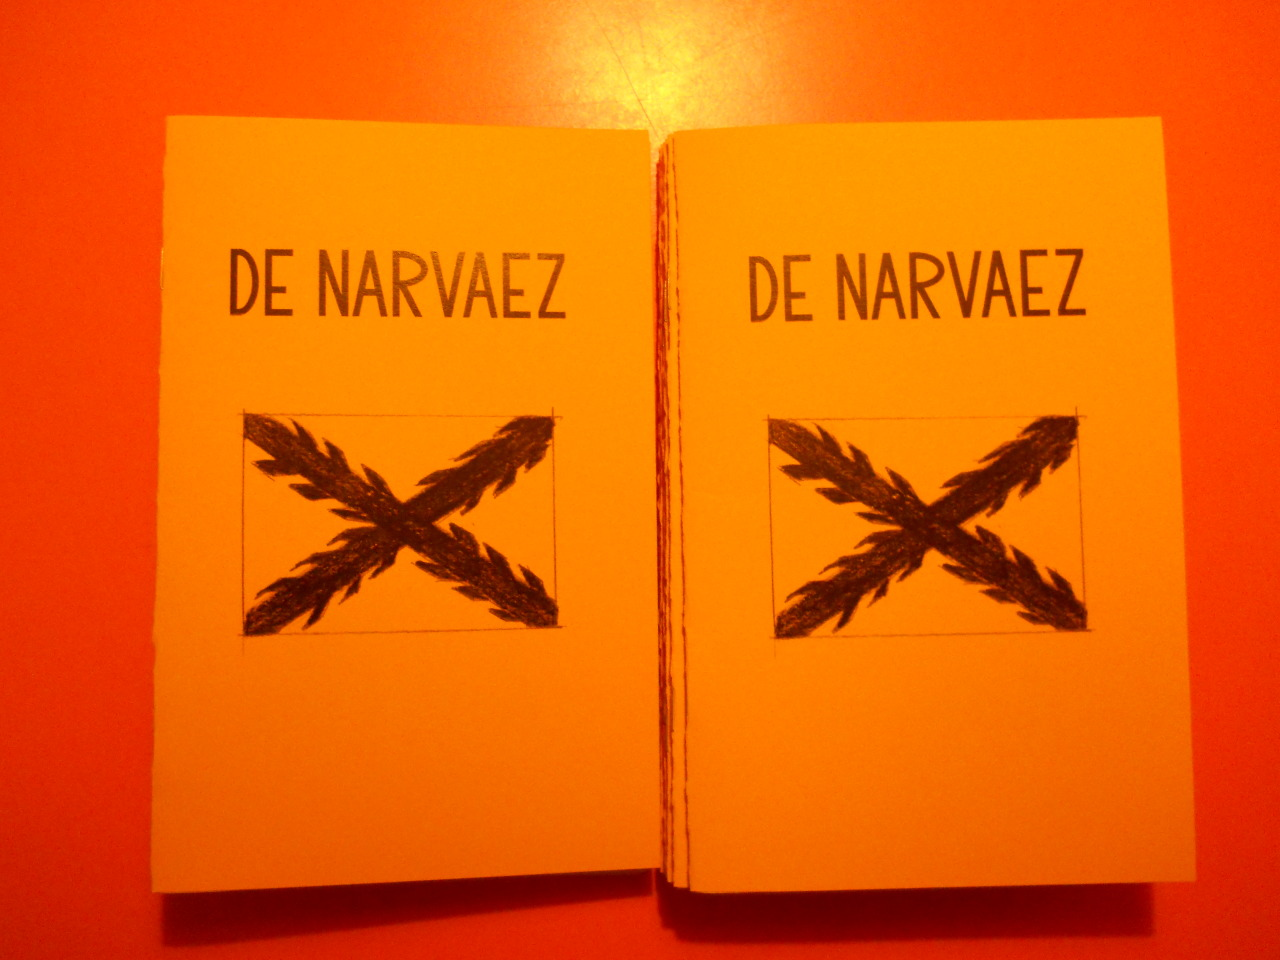 New zine DE NARVAEZ debuting next week at Brooklyn Zine Fair.